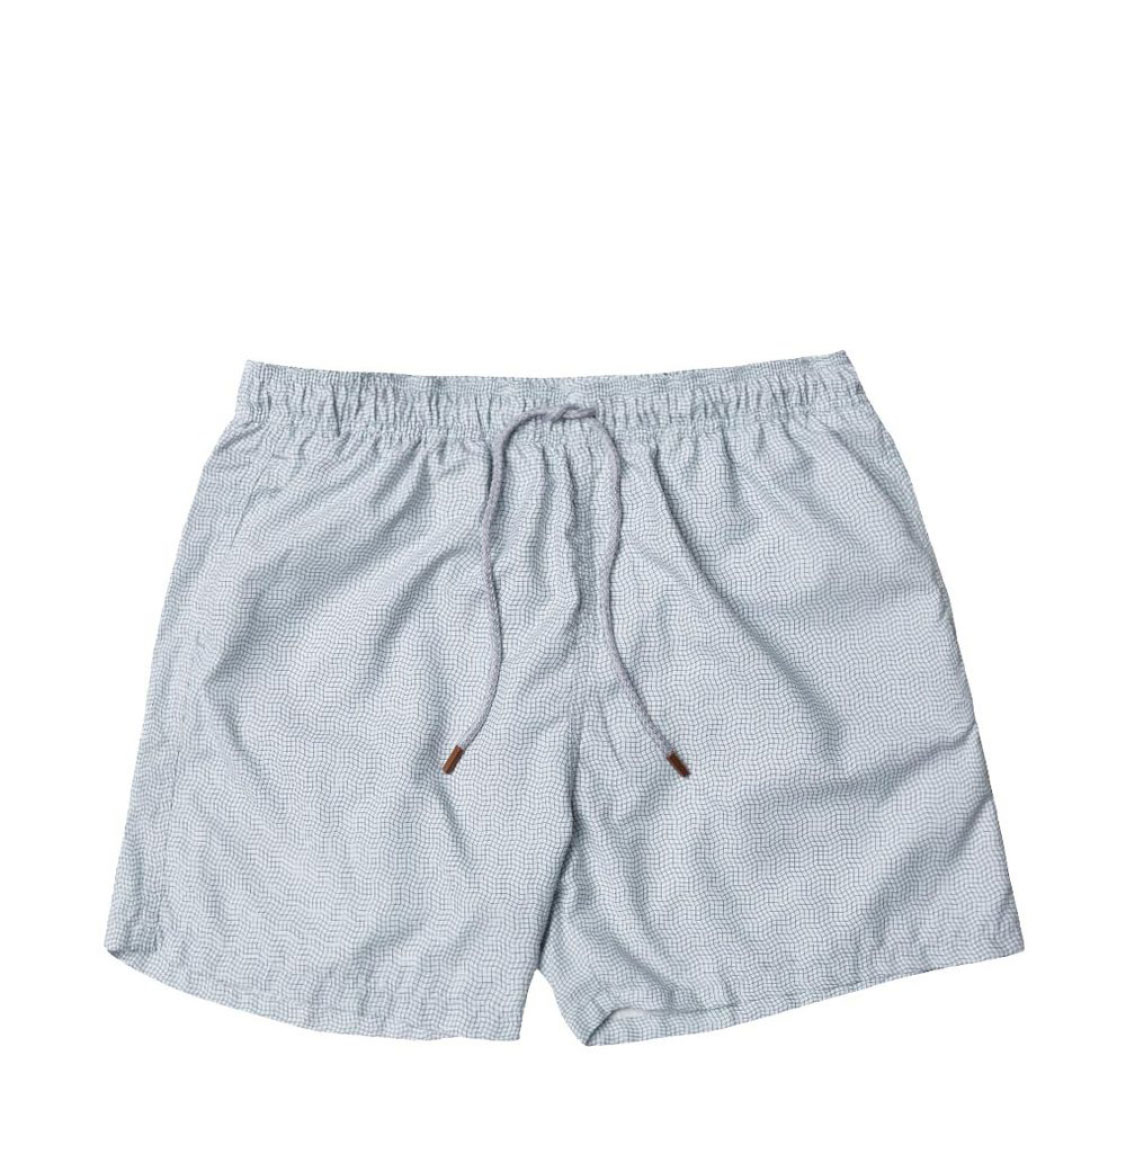 Retromarine Dizzy Grid Olive Swim Shorts